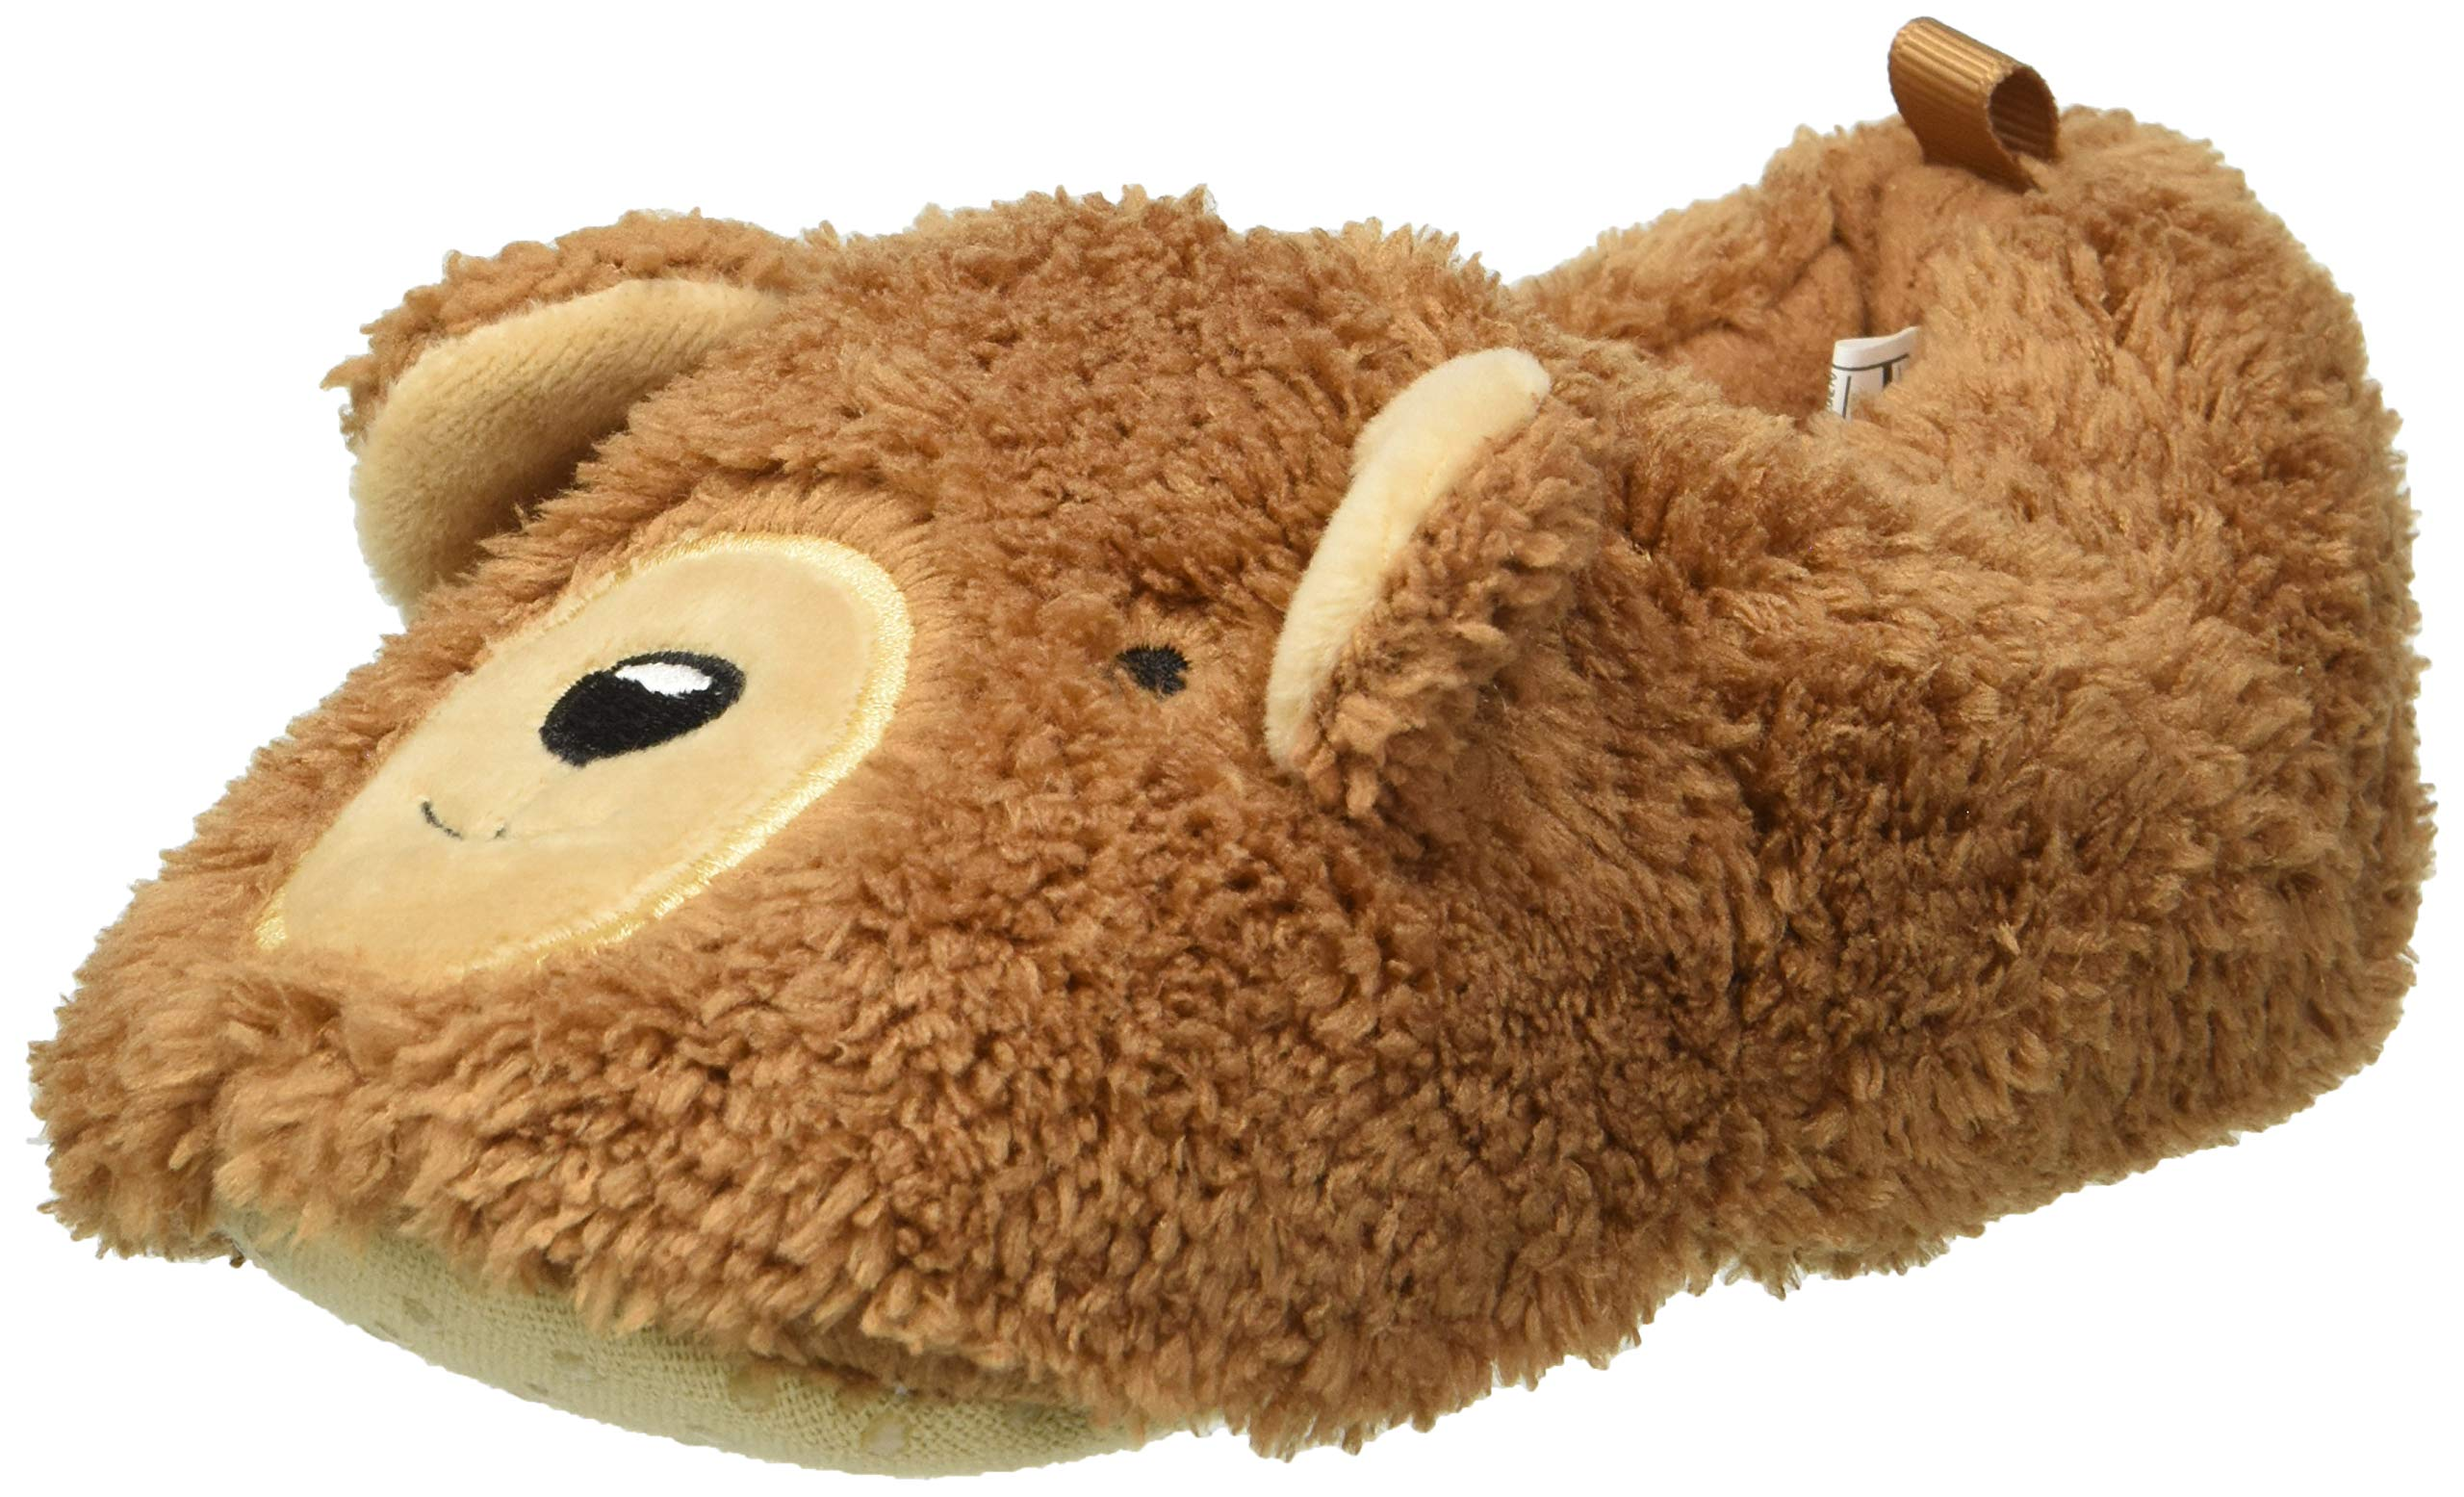 Carter's Boys' Brody2-S Bear Slipper, Tan, 7/8 M US Toddler